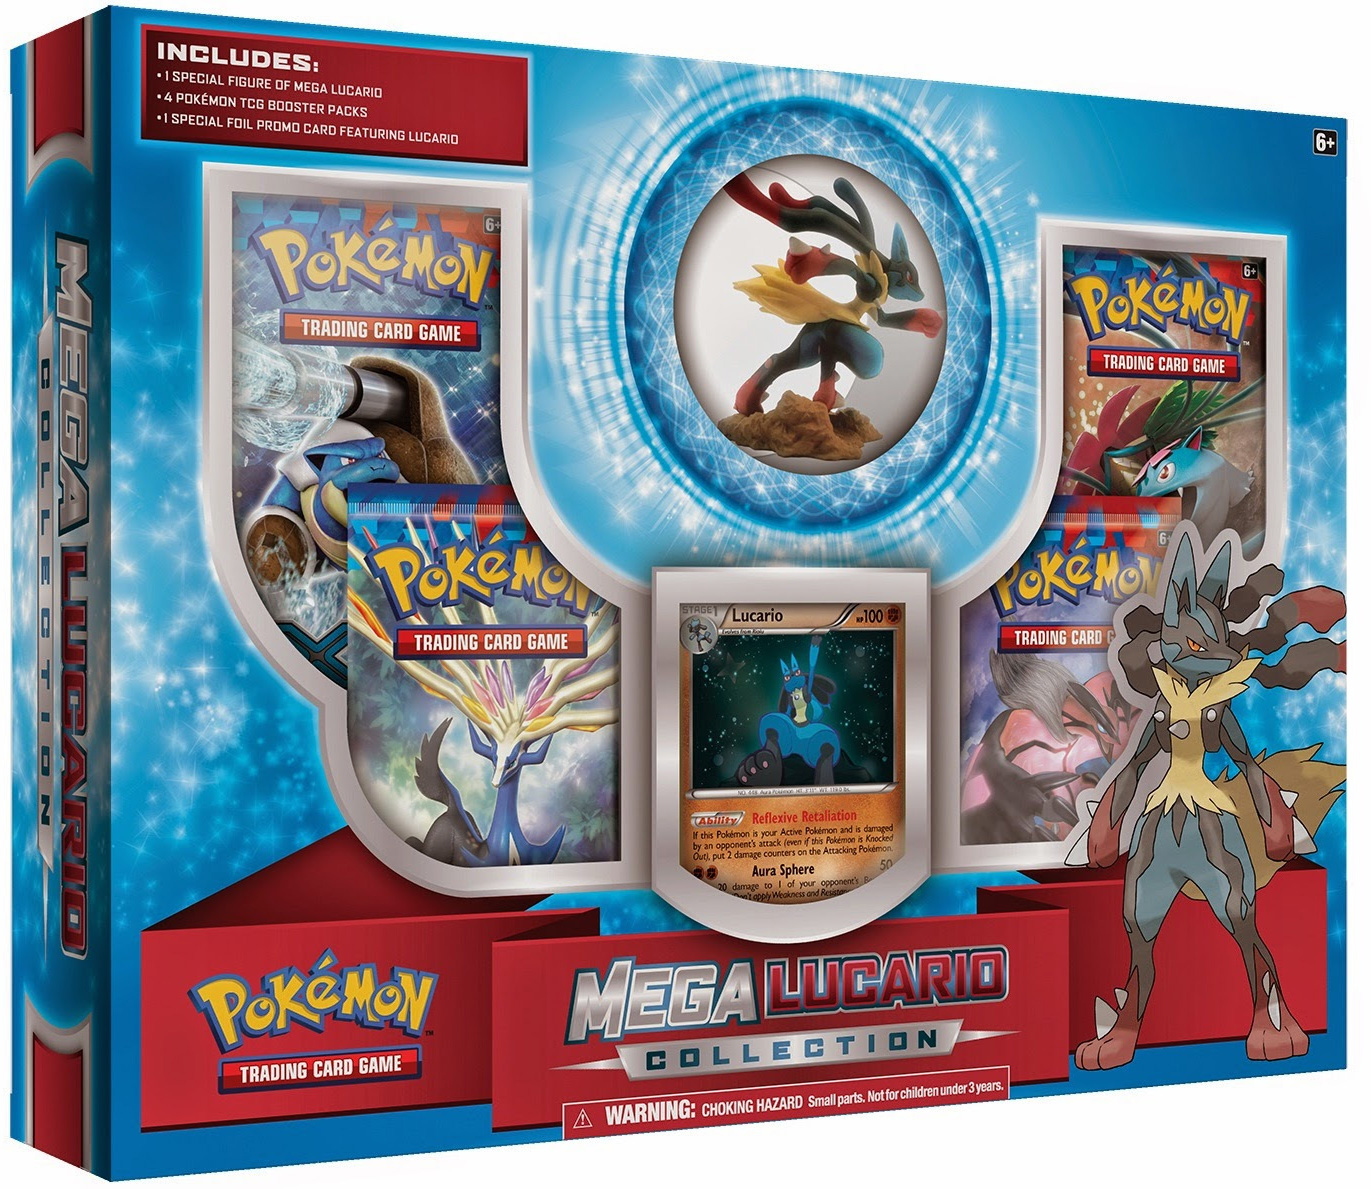 Mega_Lucario_Collection_confezione_pokemontimes-it